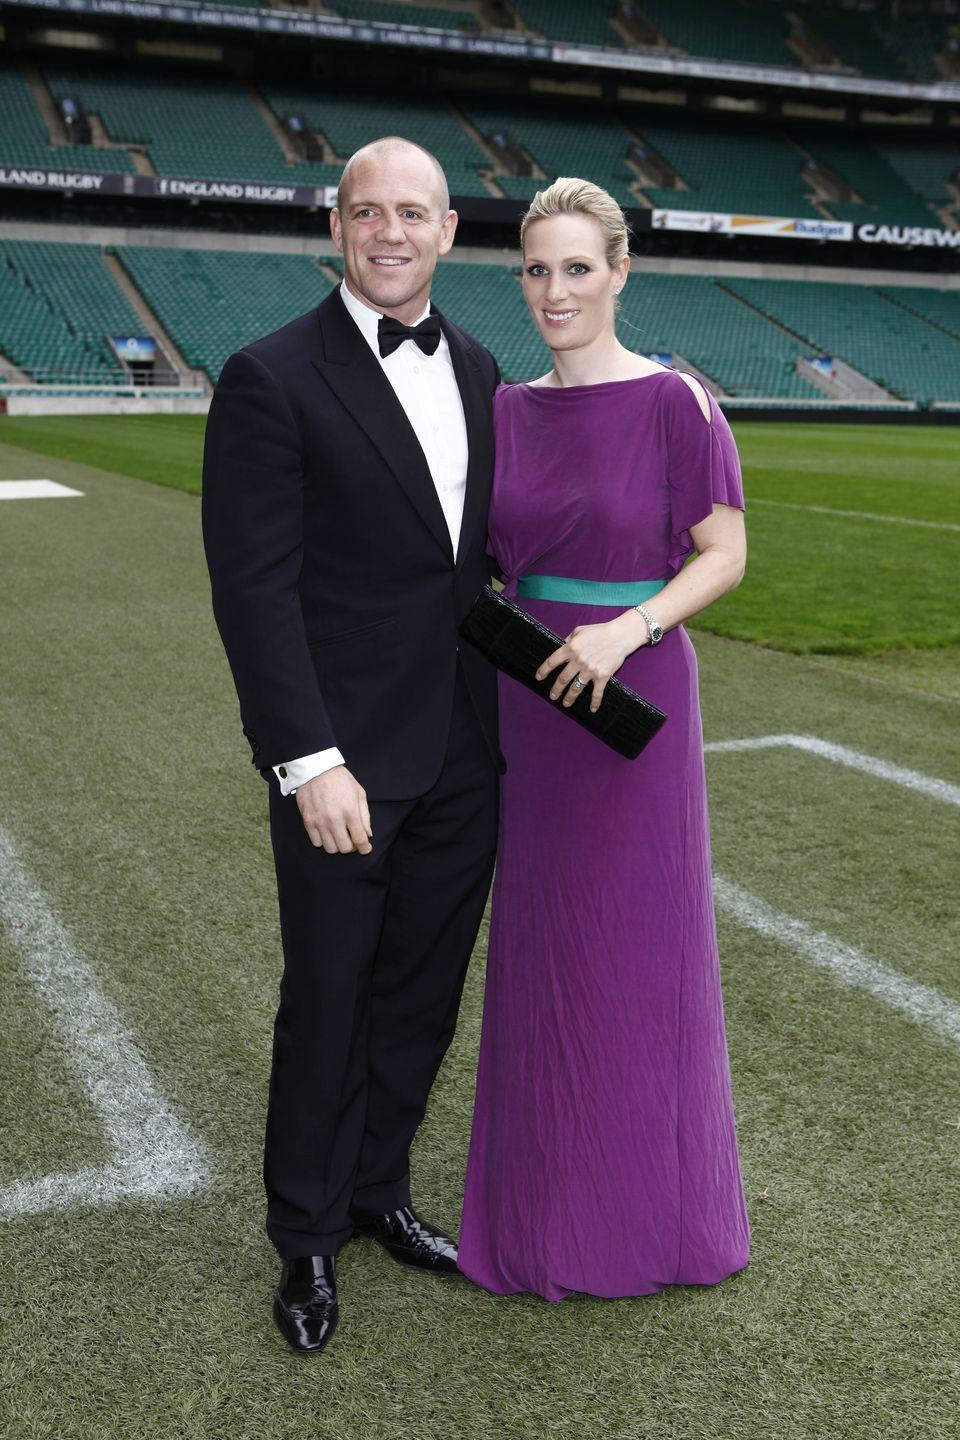 <p>Princess Anne's daughter, Zara Tindall wore a deep purple gown with a belt to the Rugby For Heroes Charity Gala Dinner at Twickenham Stadium, which she attended with her husband, Mike Tindall.</p>